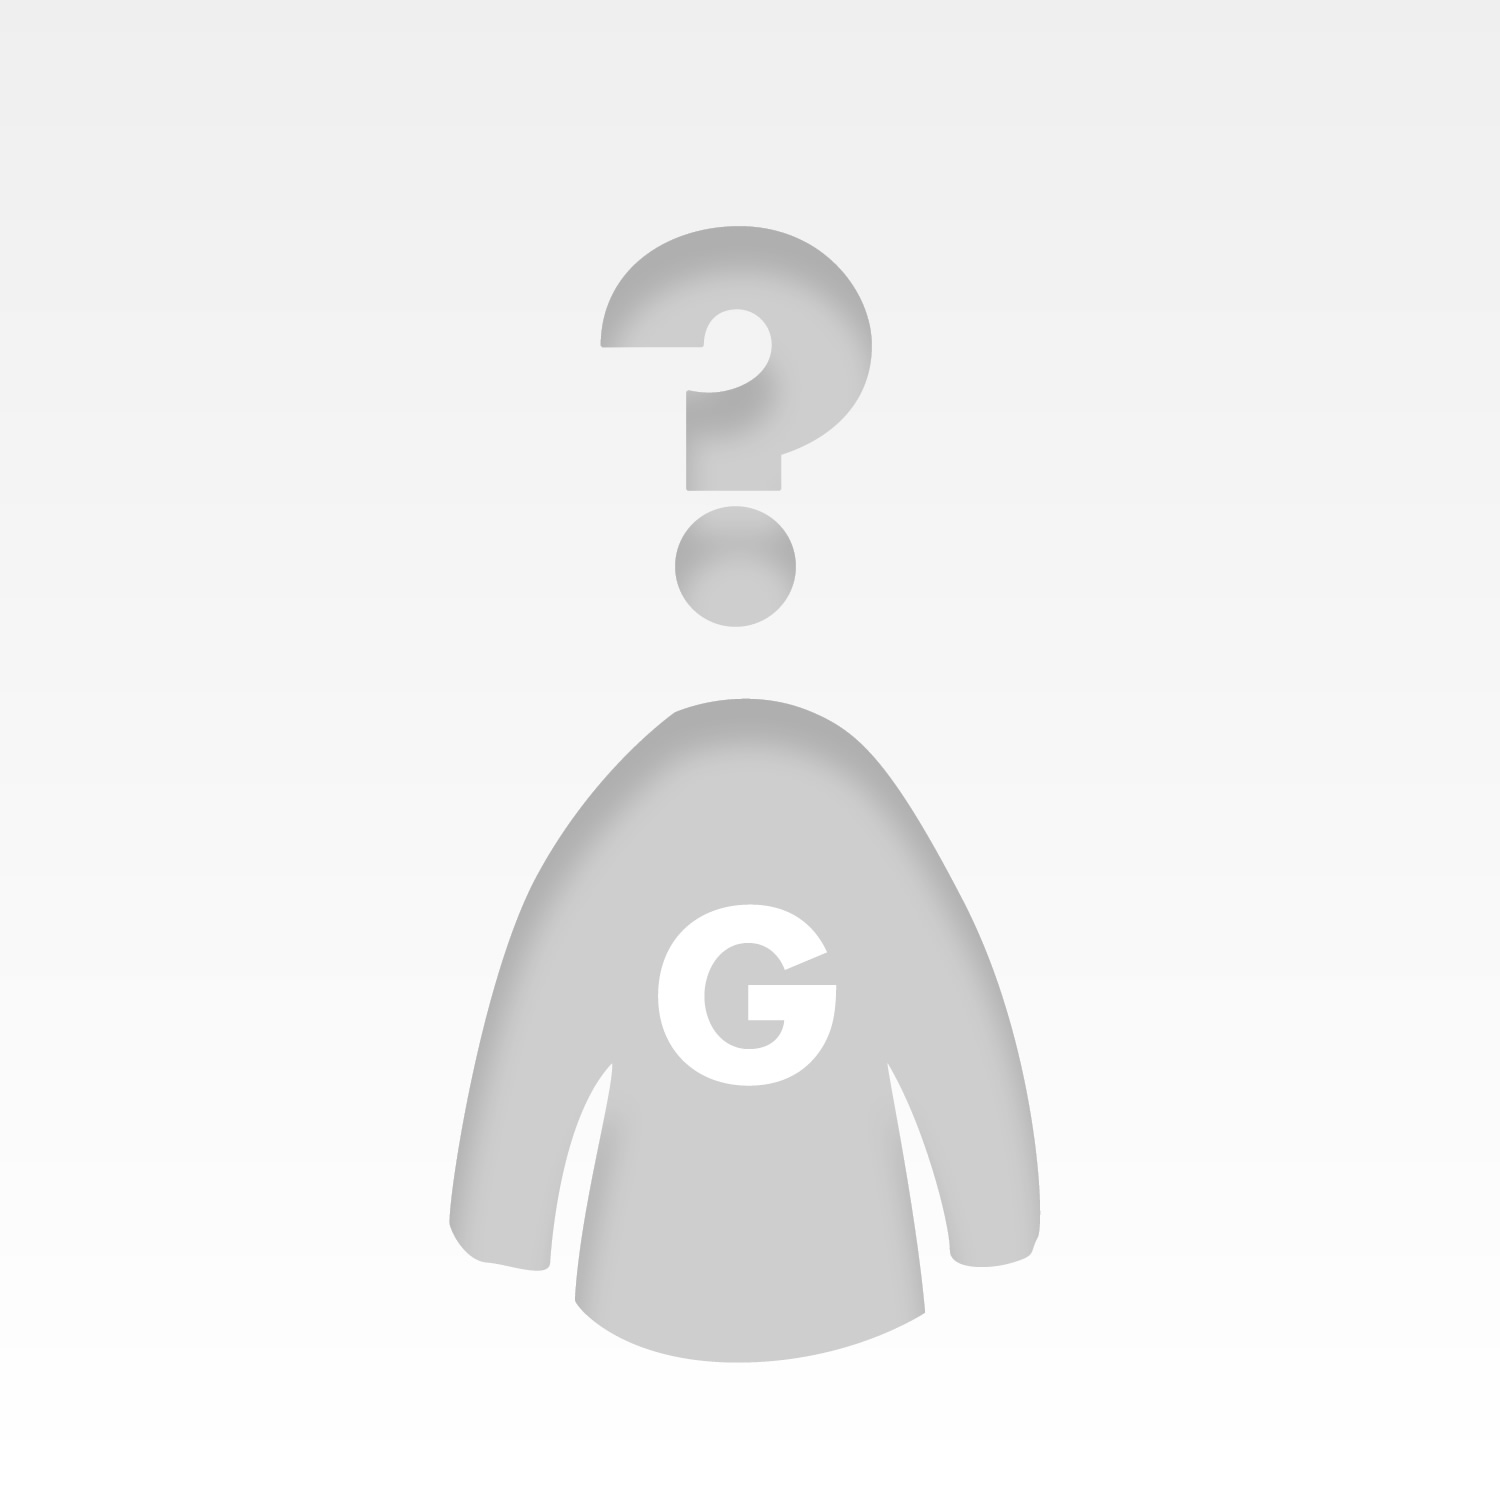 The sxs7gdg's avatar